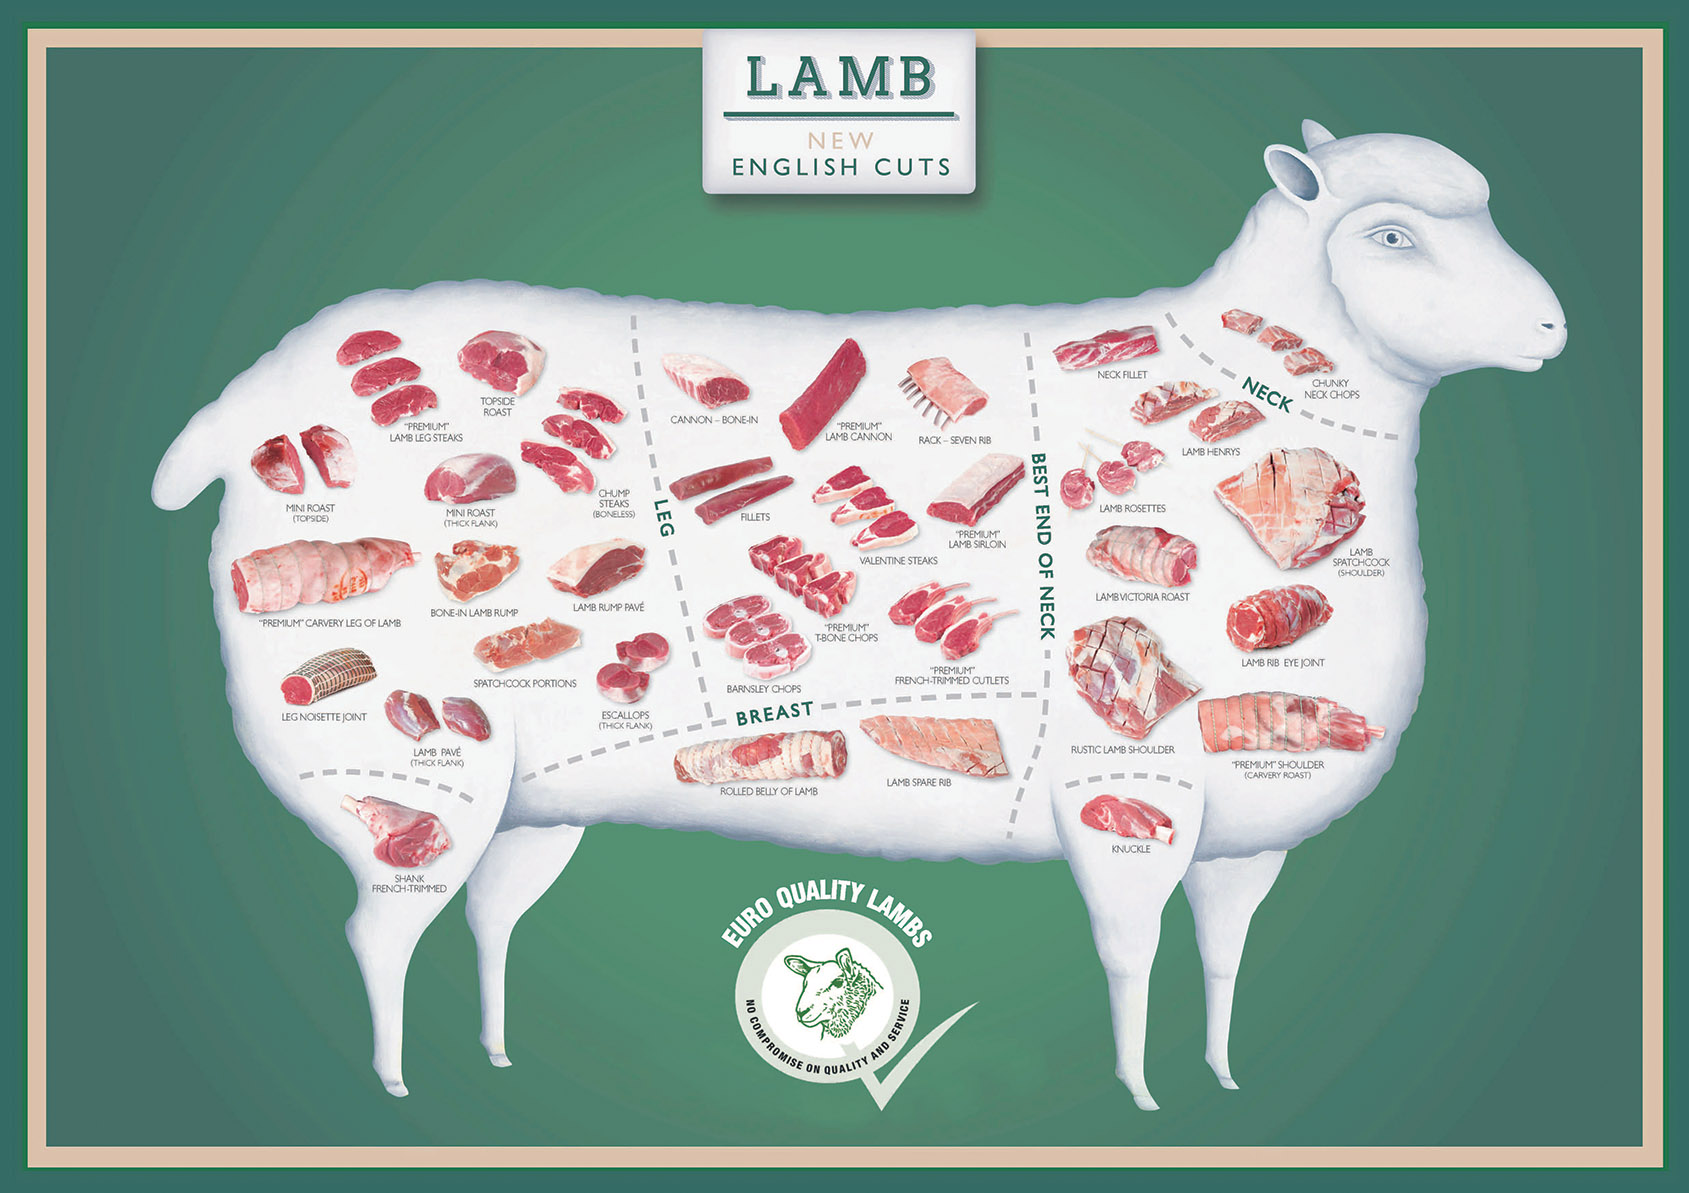 Informative lamb graphic detailing vast selection of lamb cuts available and which part of the animal each is taken from